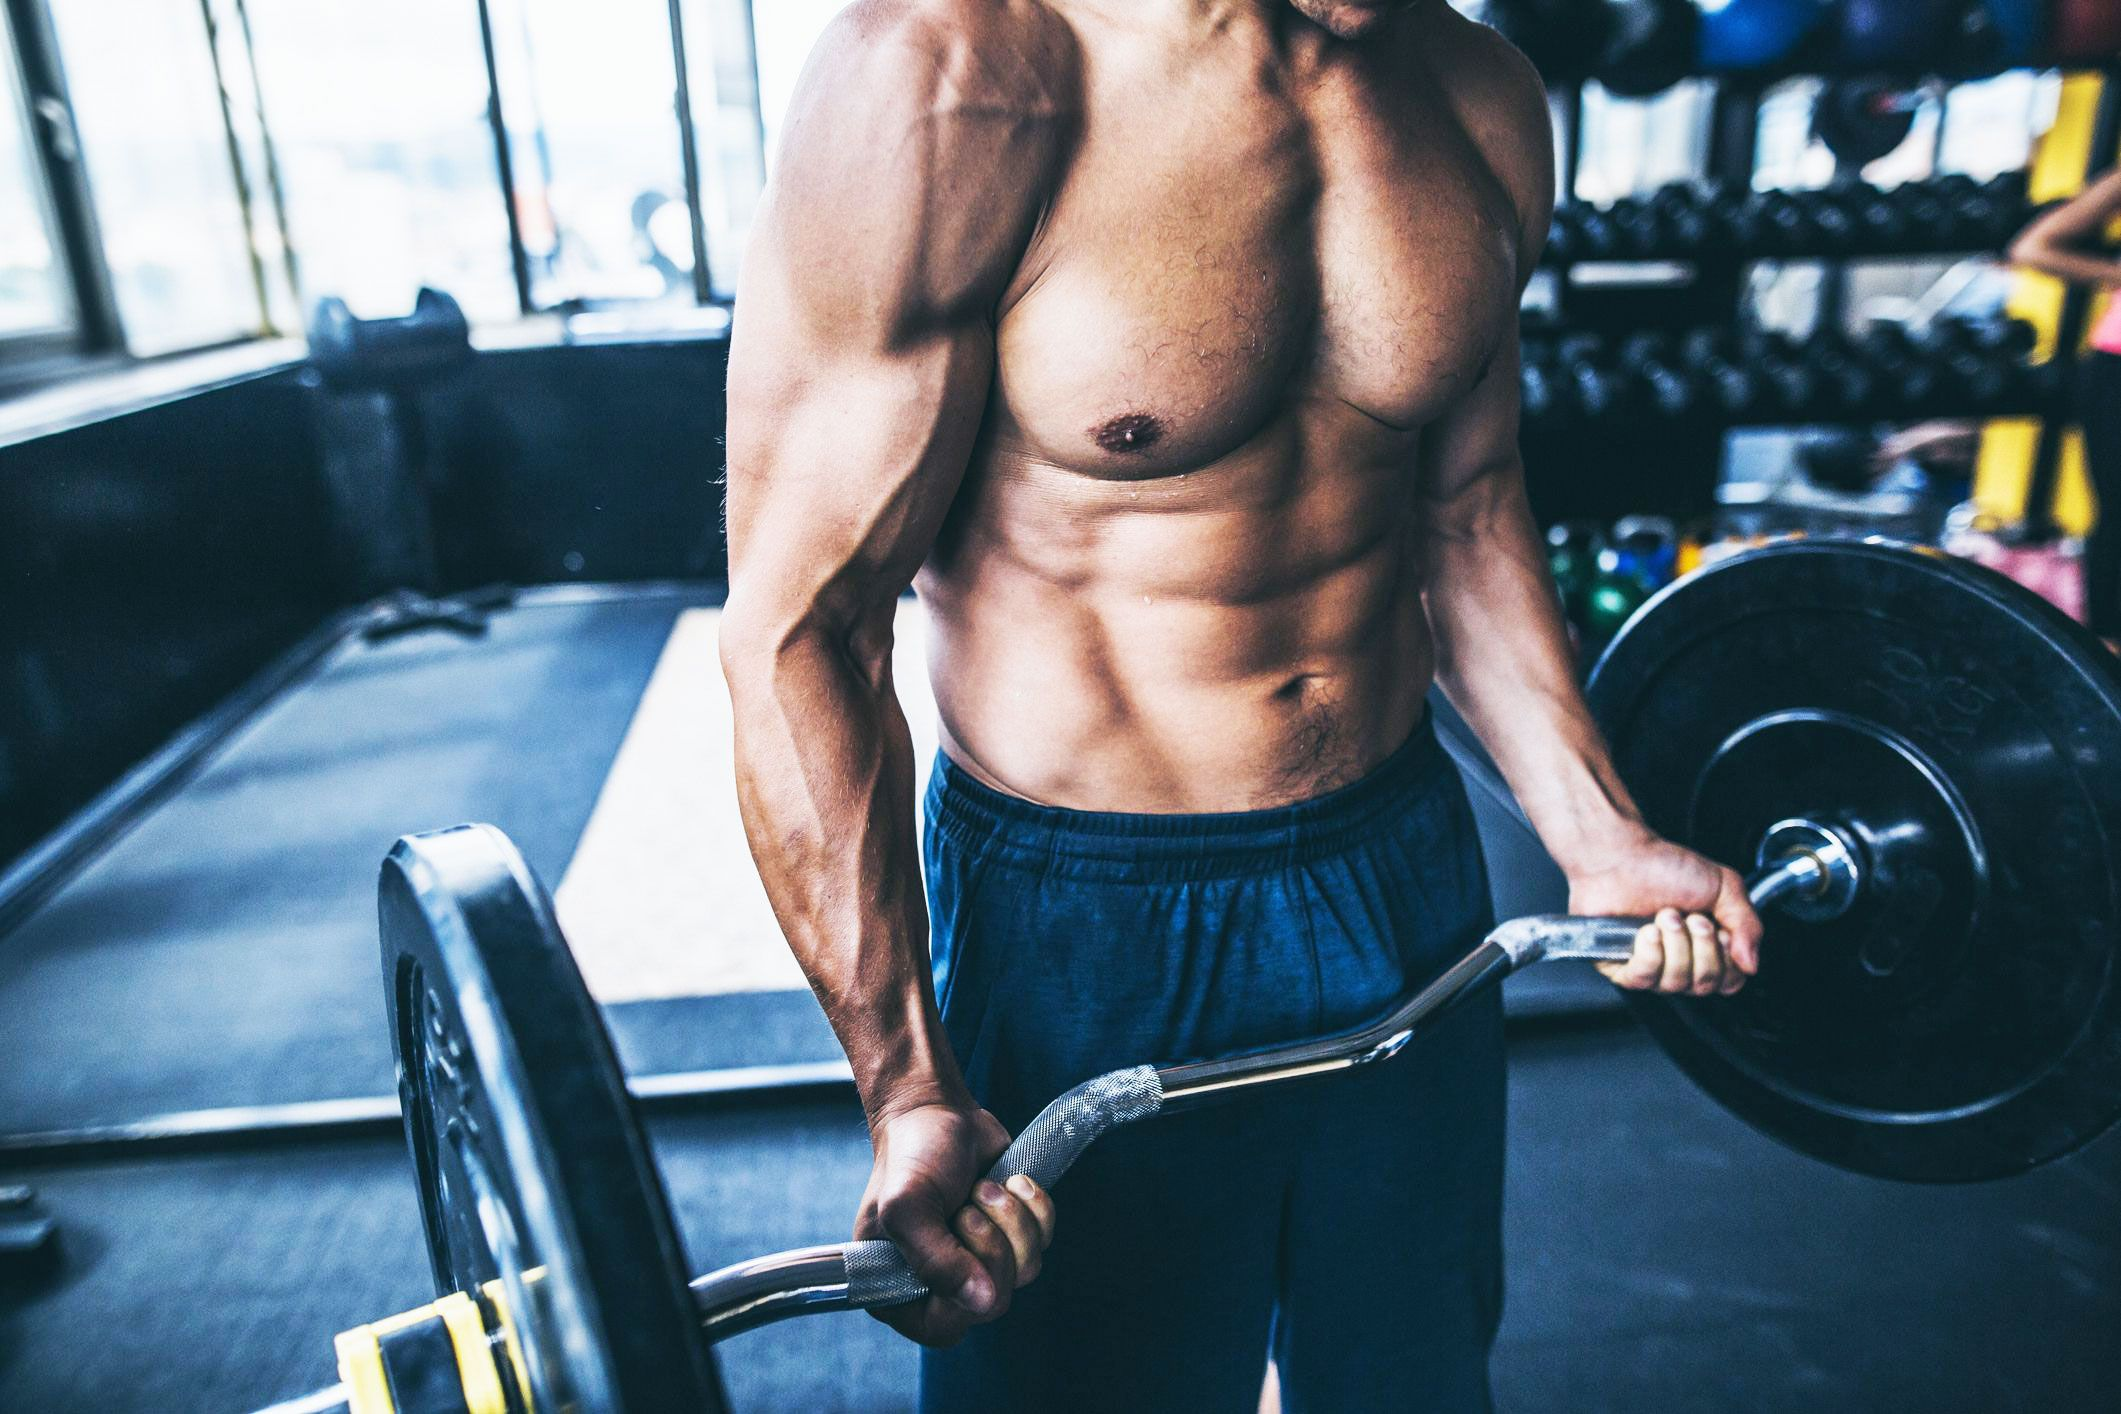 Muscles Like Being Pumped During Fitness?